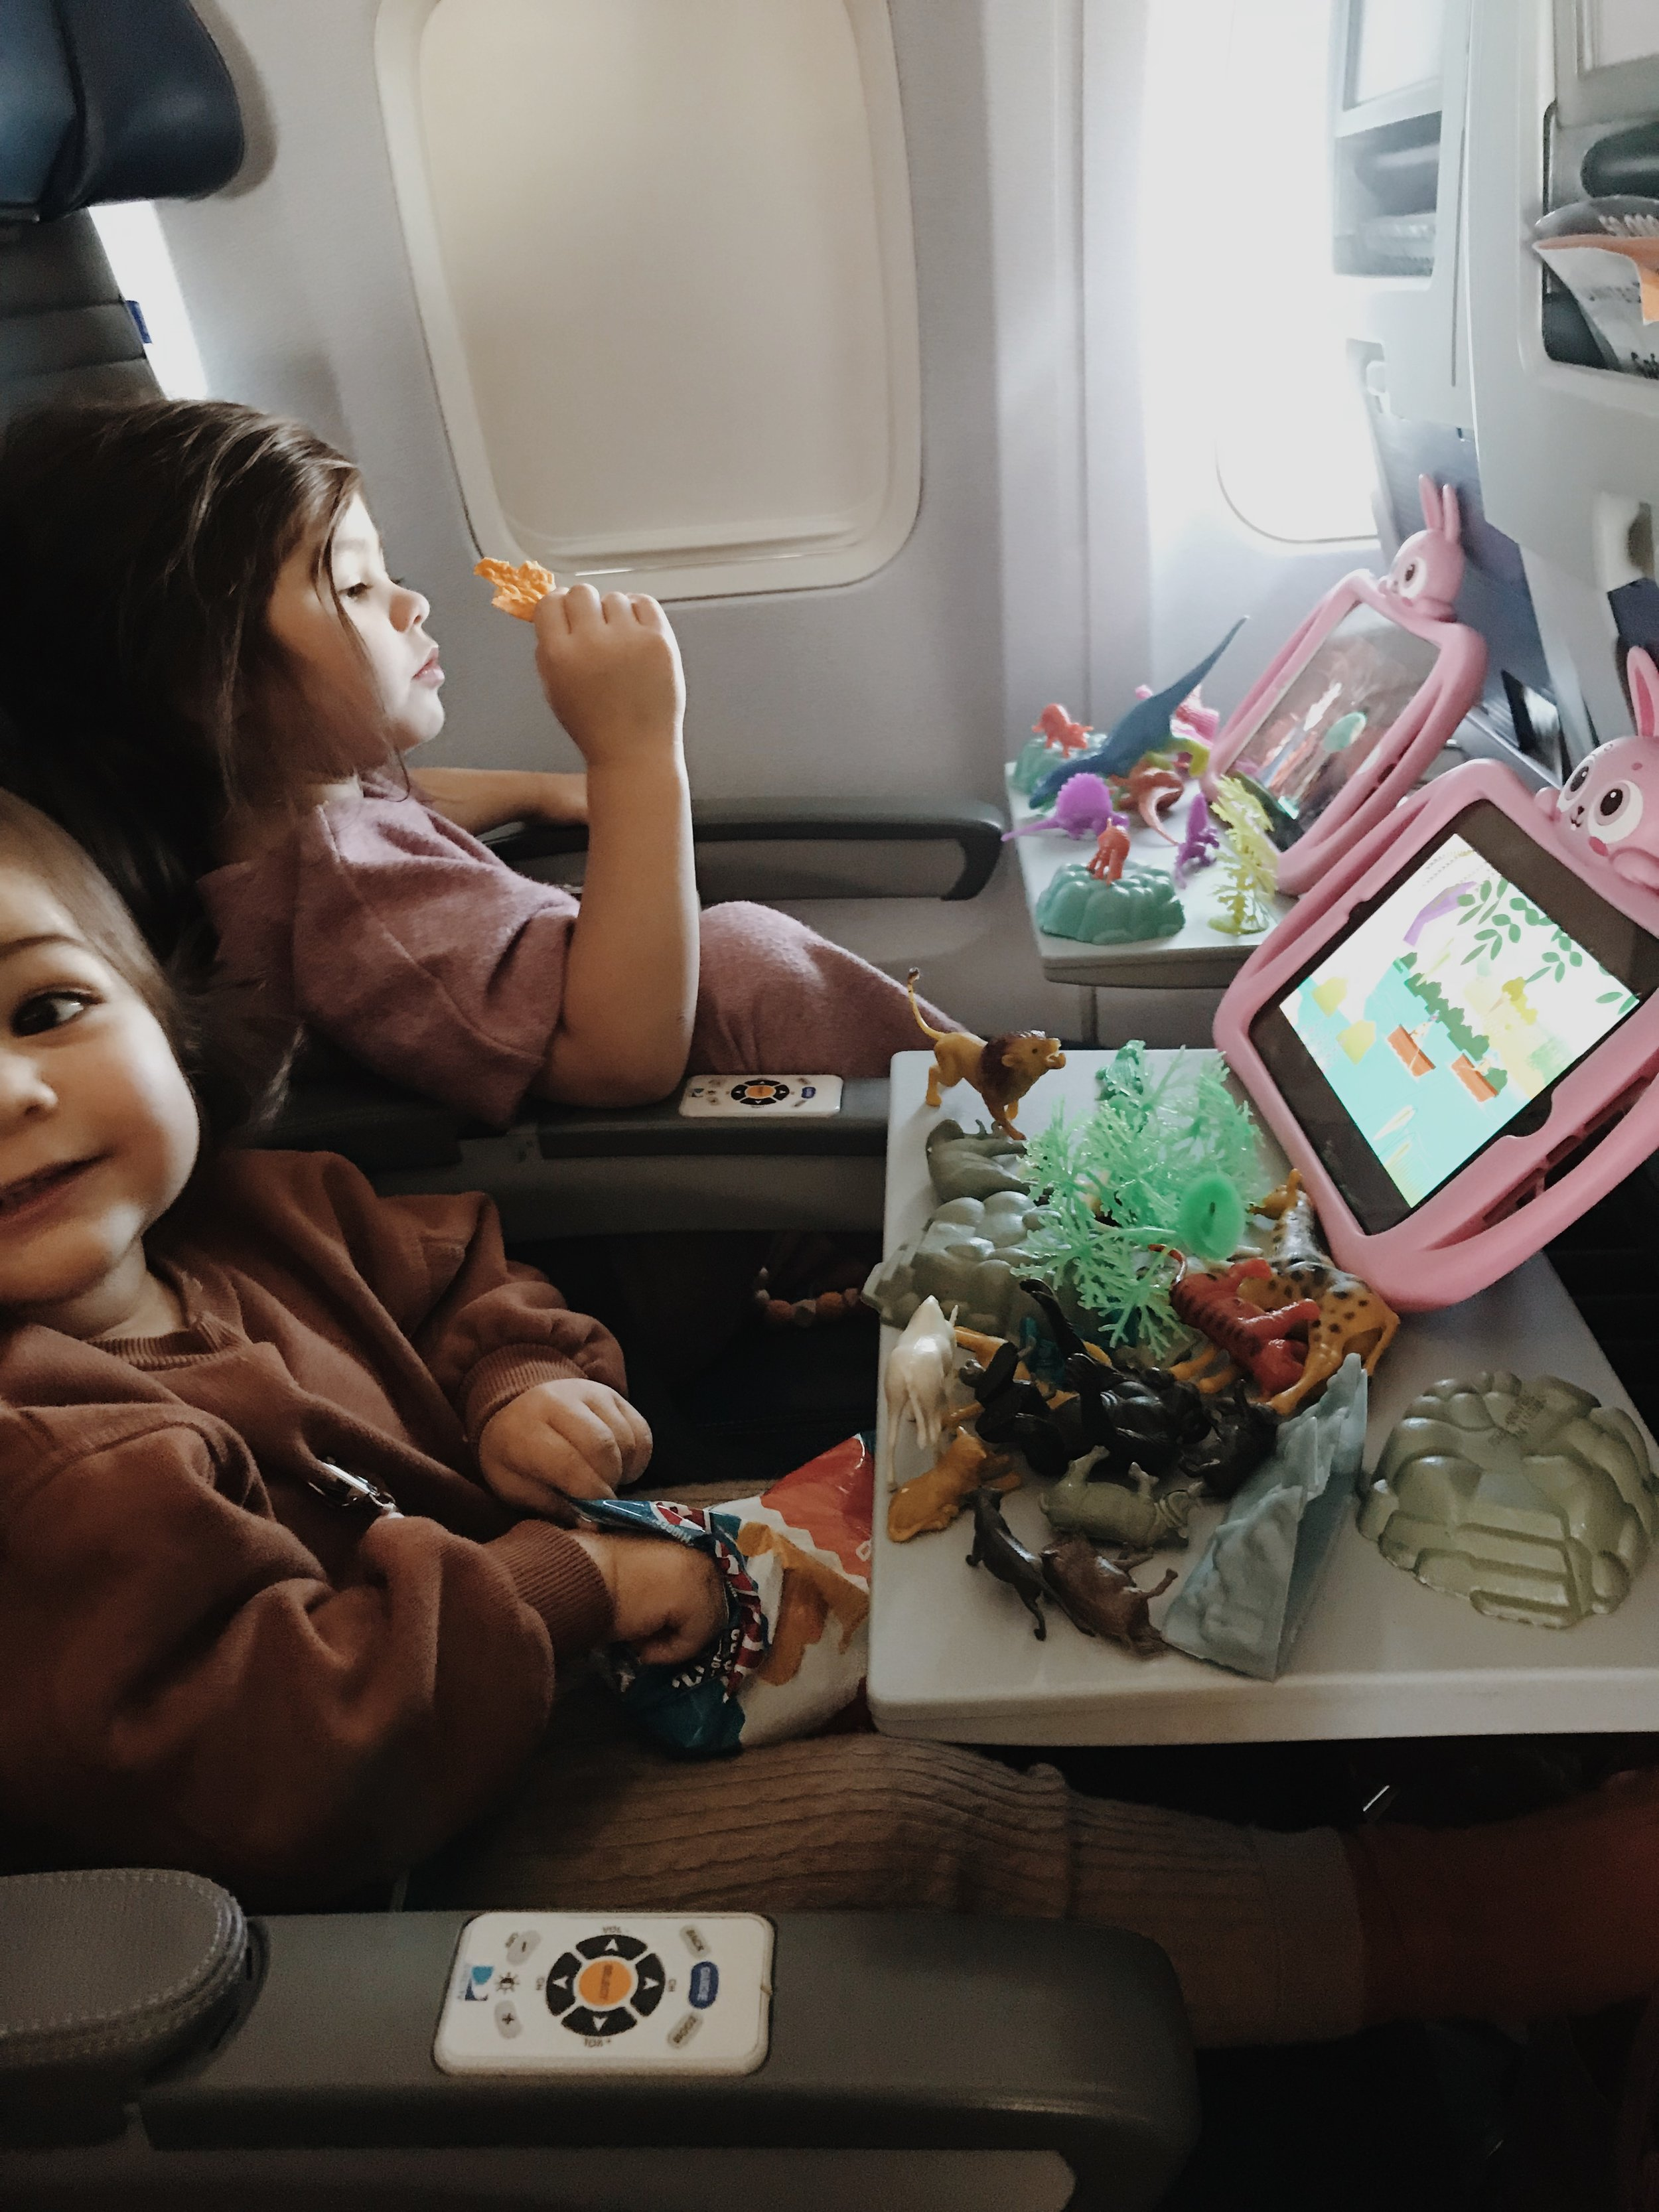 This is our girls using their tablet cases which they loveeeee.